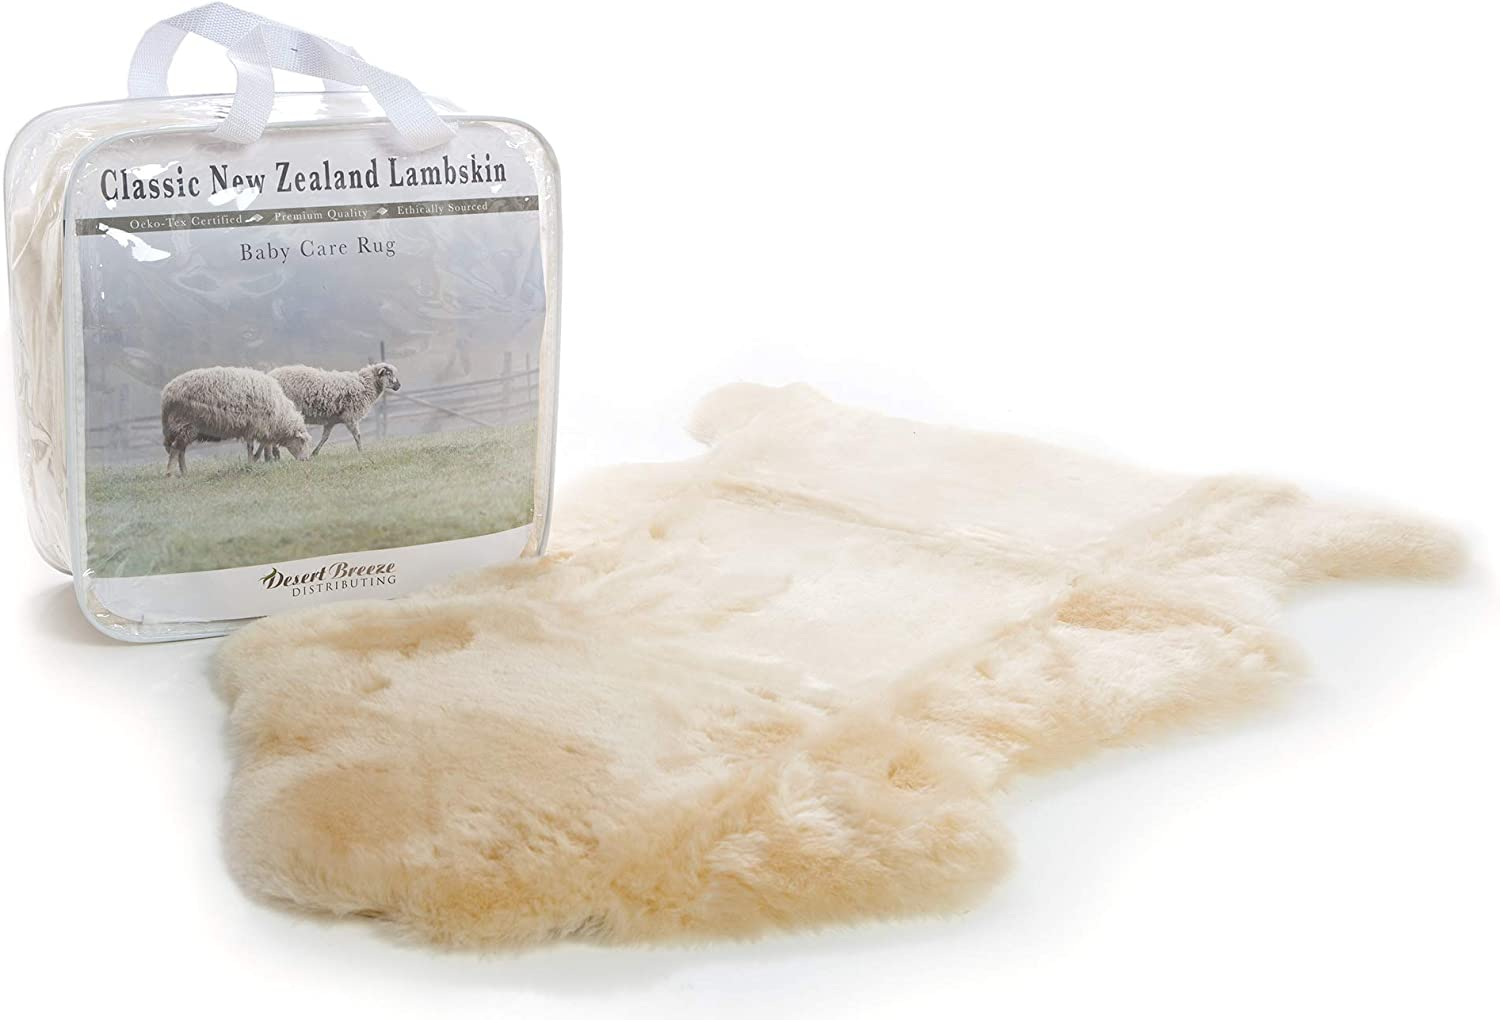 New Zealand Classic Lambskin, Ethically Sourced, Shorn Wool, Soft and Natural Sheepskin Baby Care Rug, Premium Quality, Size LRG 34-36 inches